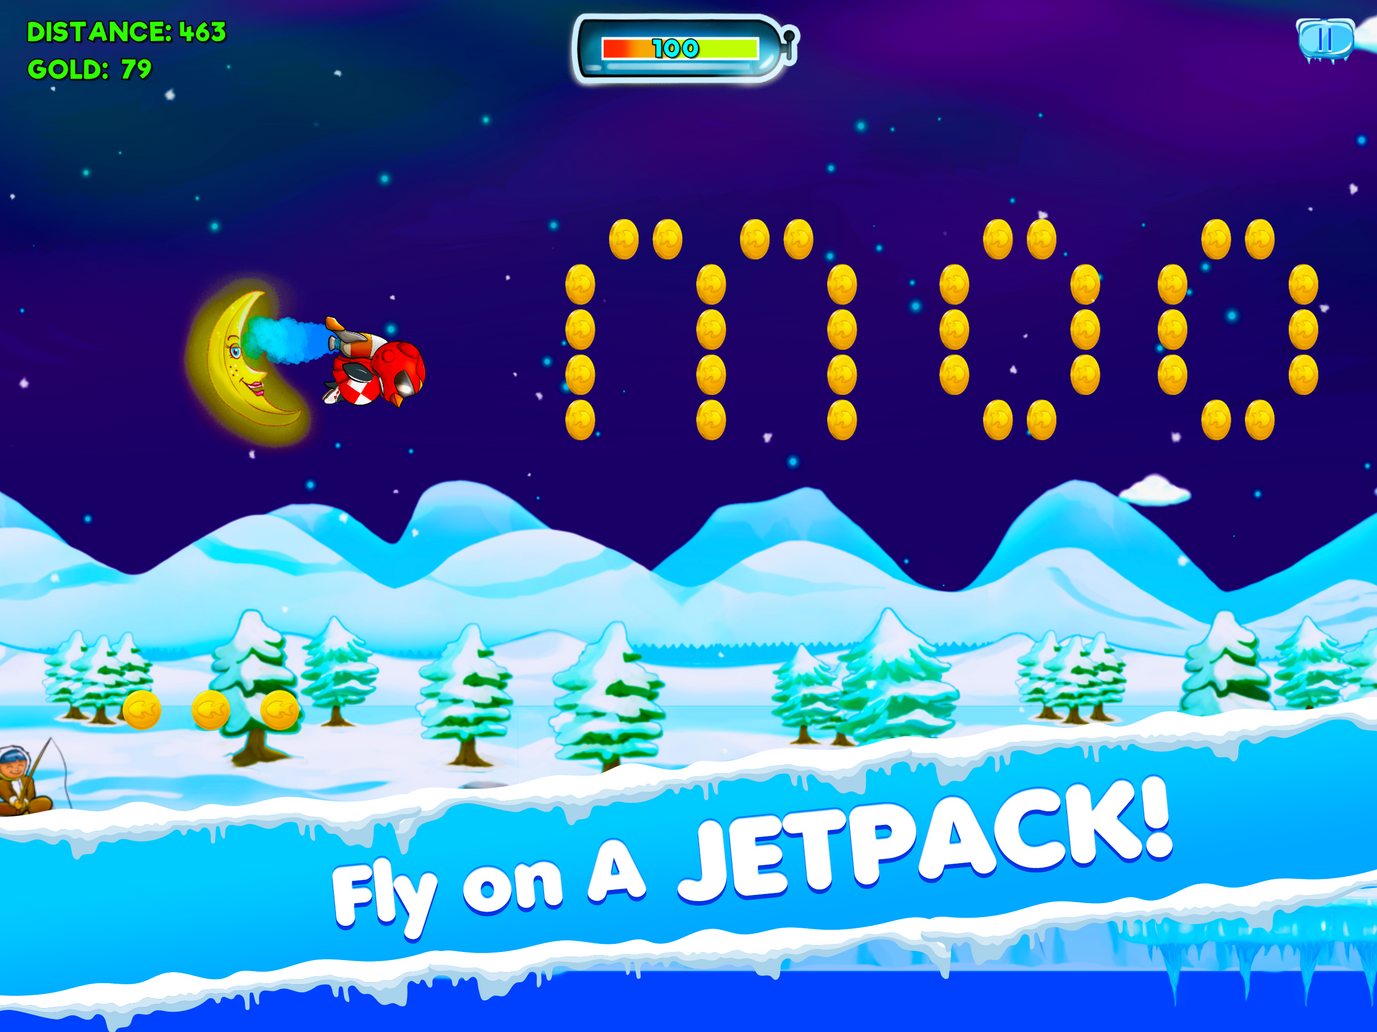 Fly on a a jetpack!